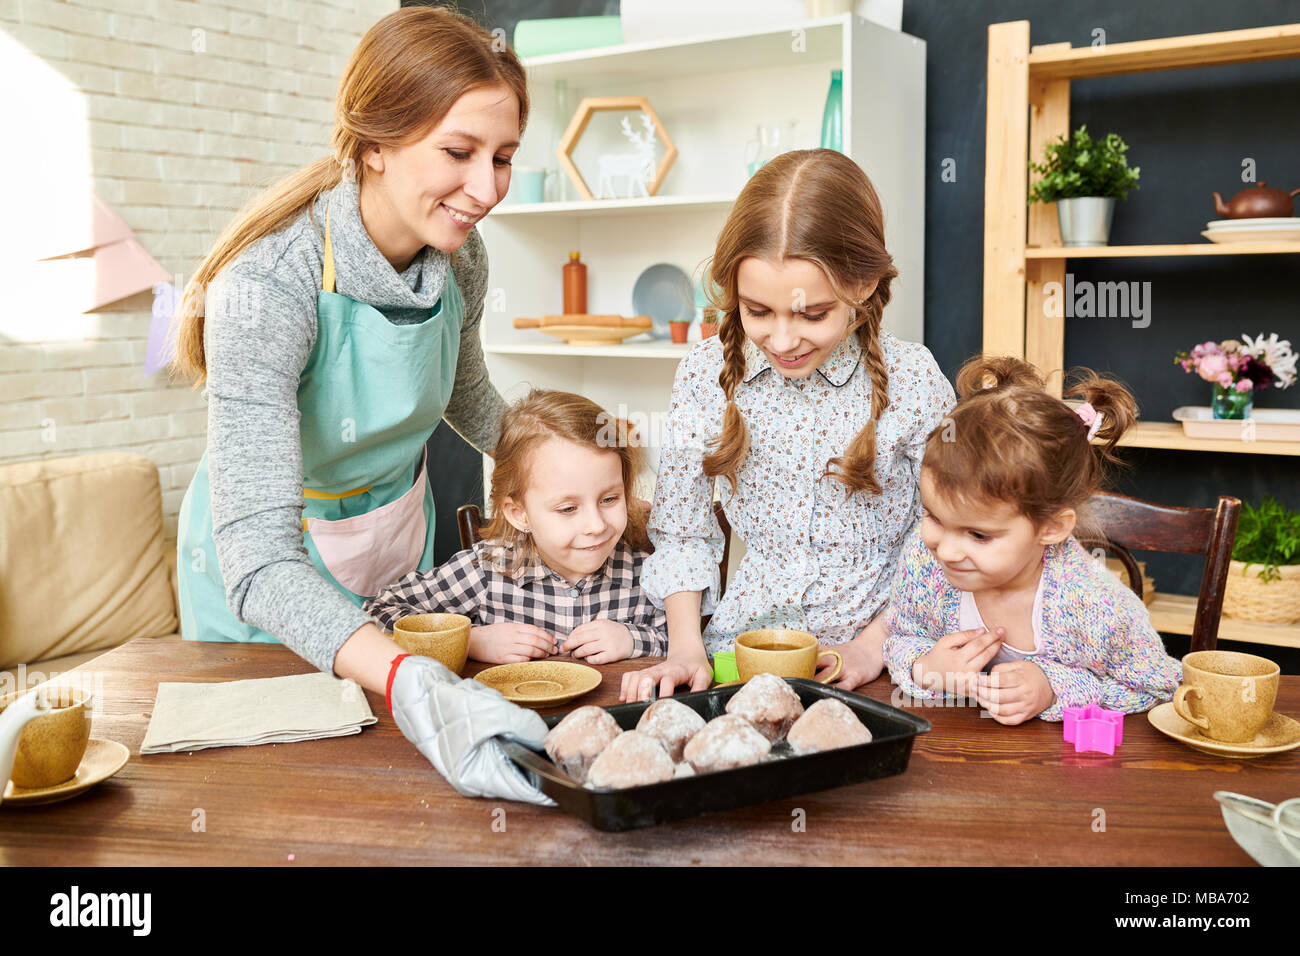 Gathered Together for Tea Party - Stock Image